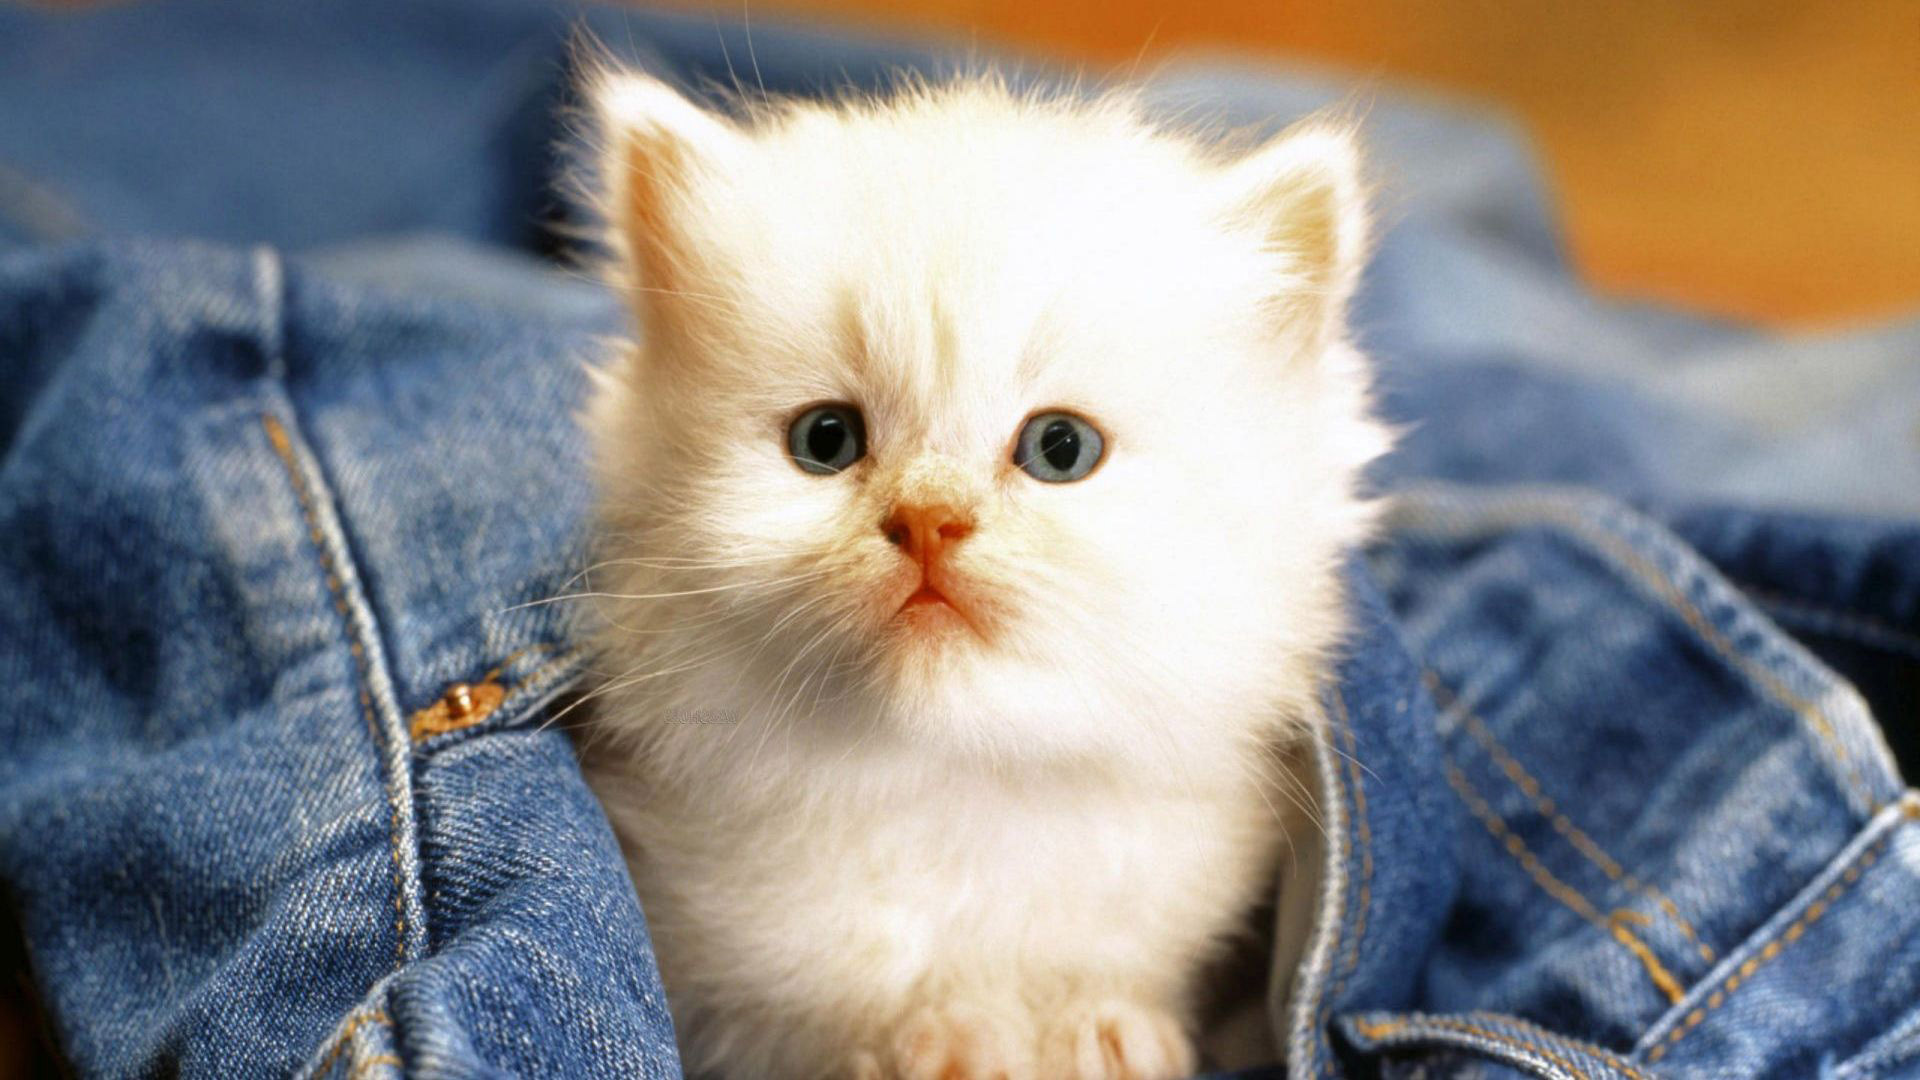 cats wallpapers cute cats and kittens wallpapers for iphone 1920x1080